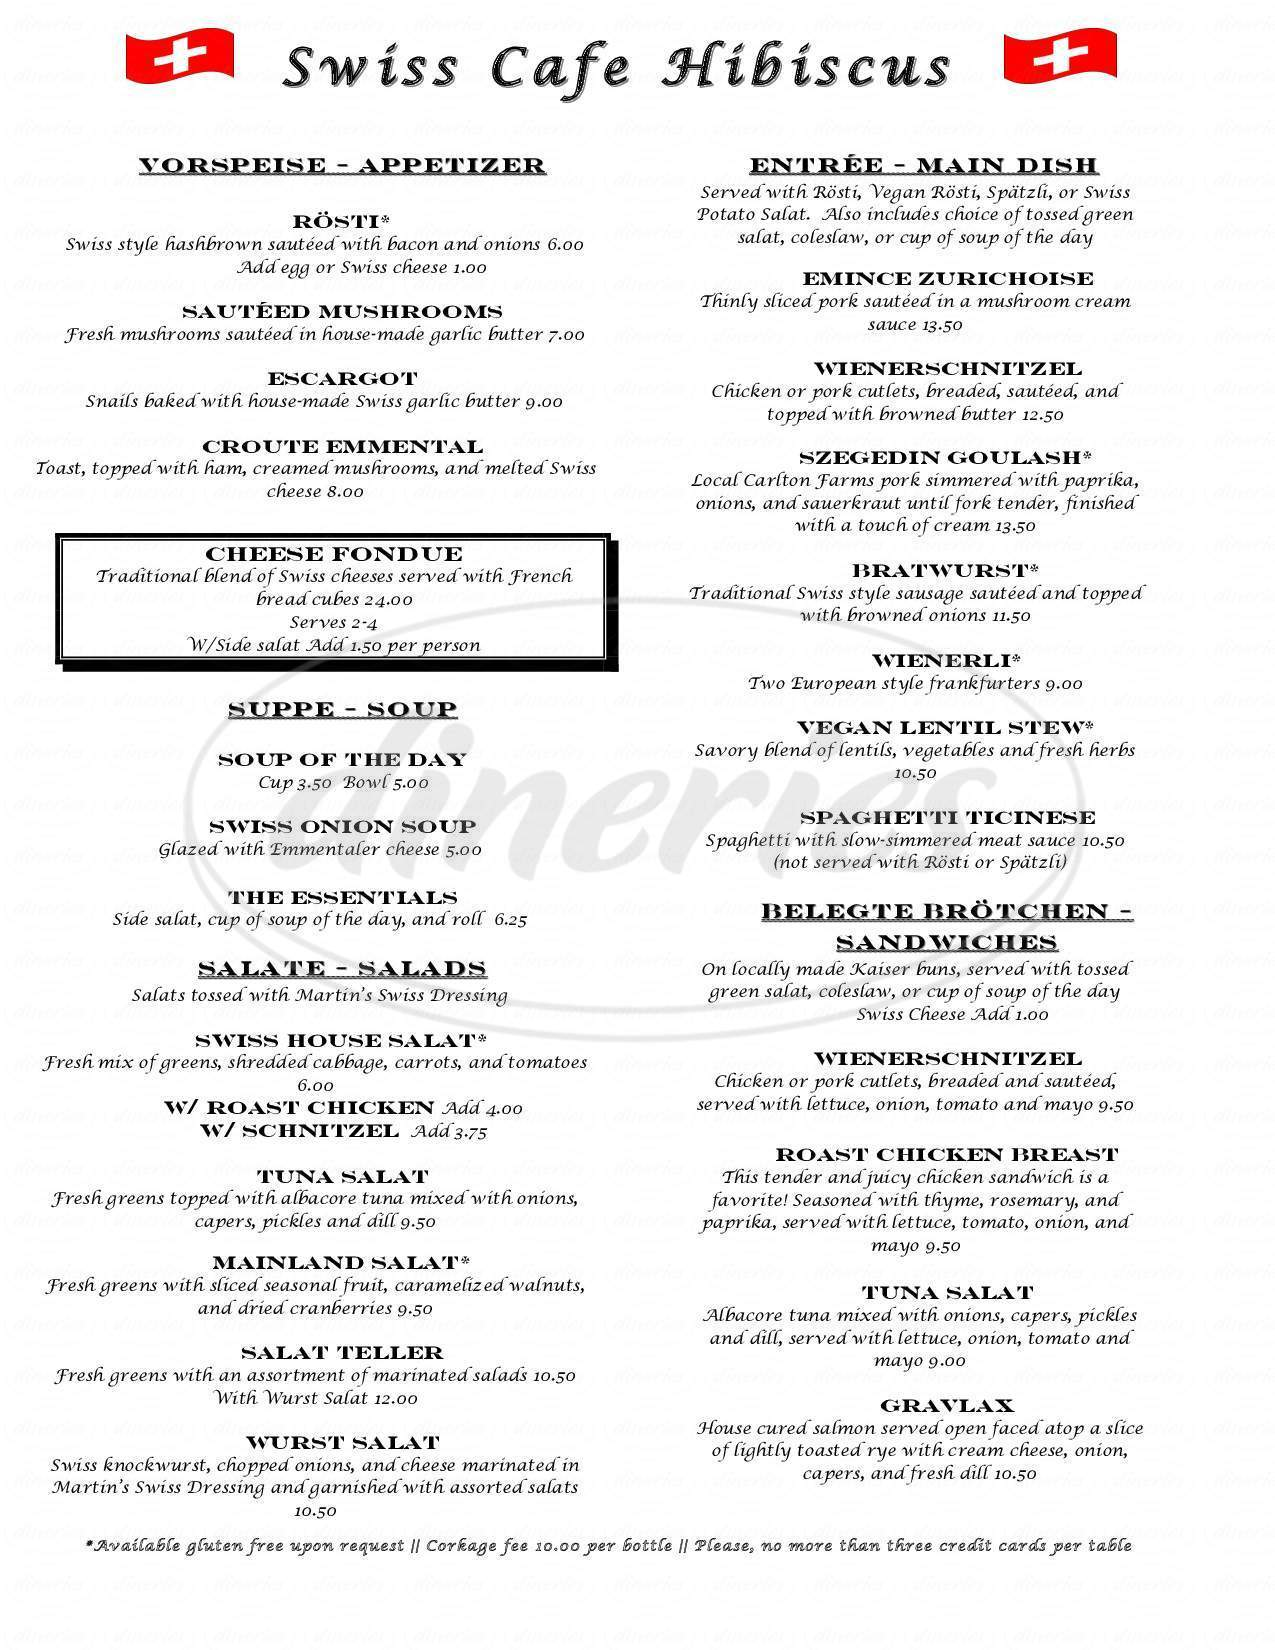 menu for Cafe Hibiscus